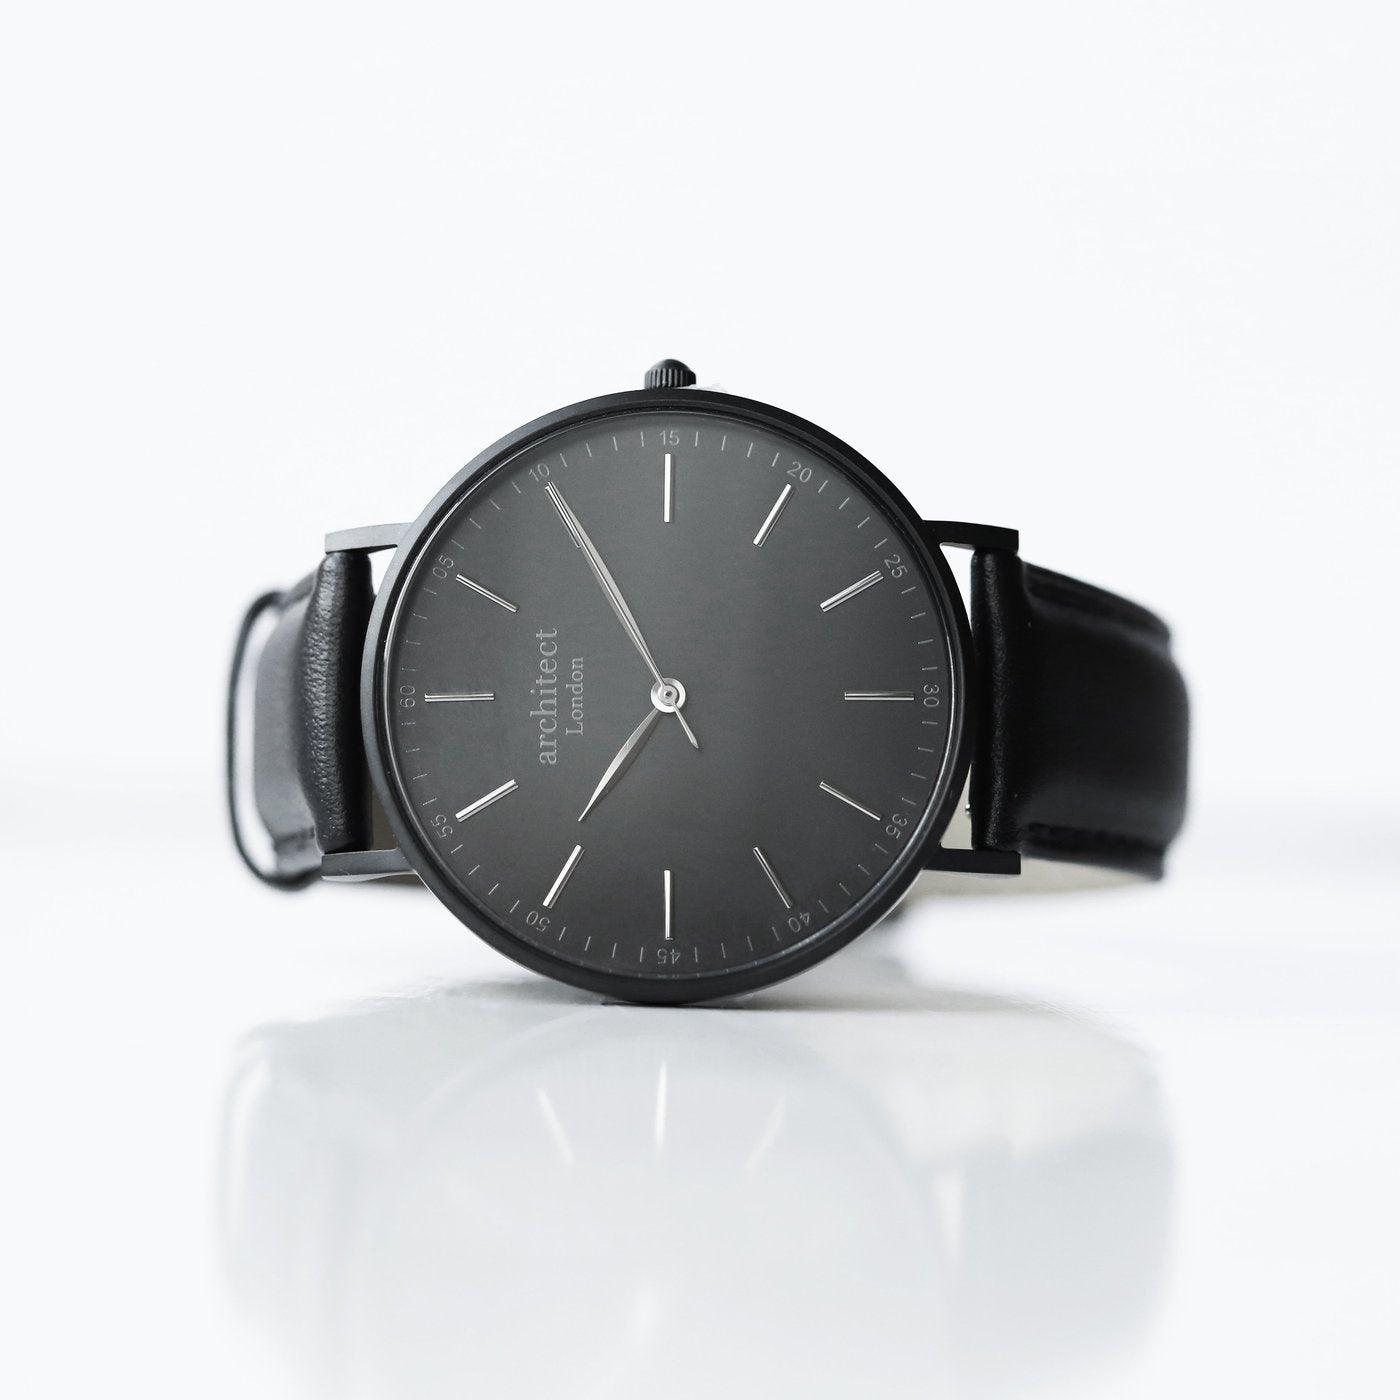 Personalised Men's Architect Watch With Jet Black Strap & Modern Font